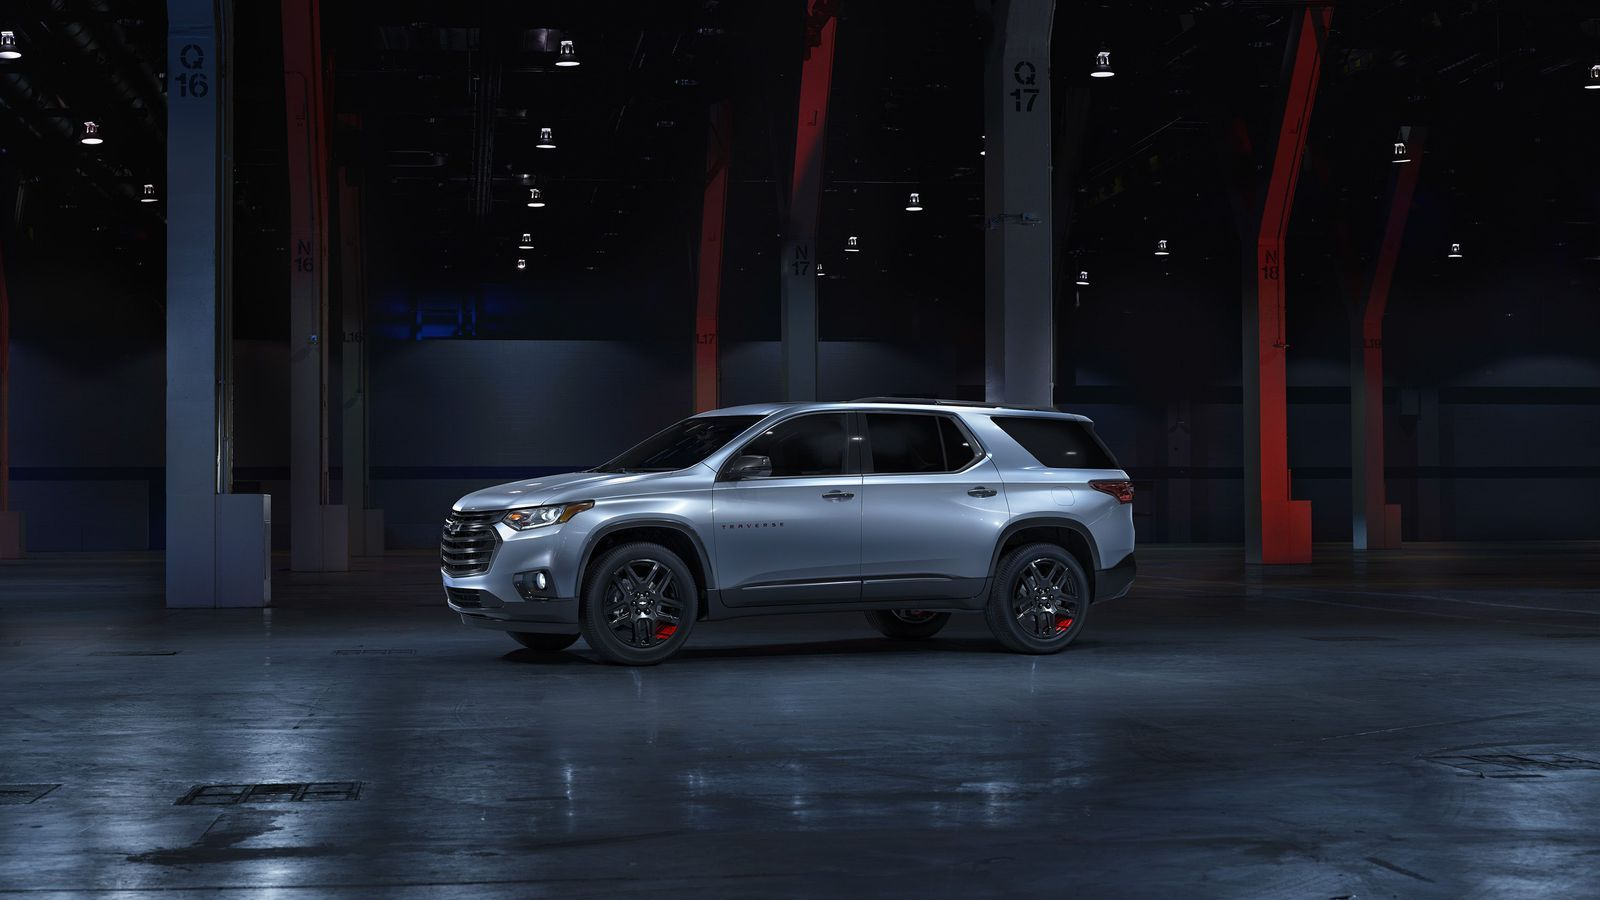 Chevrolet introduced the redline series all the way back at the 2015 sema show thanks to positive response and the success of special editions across the